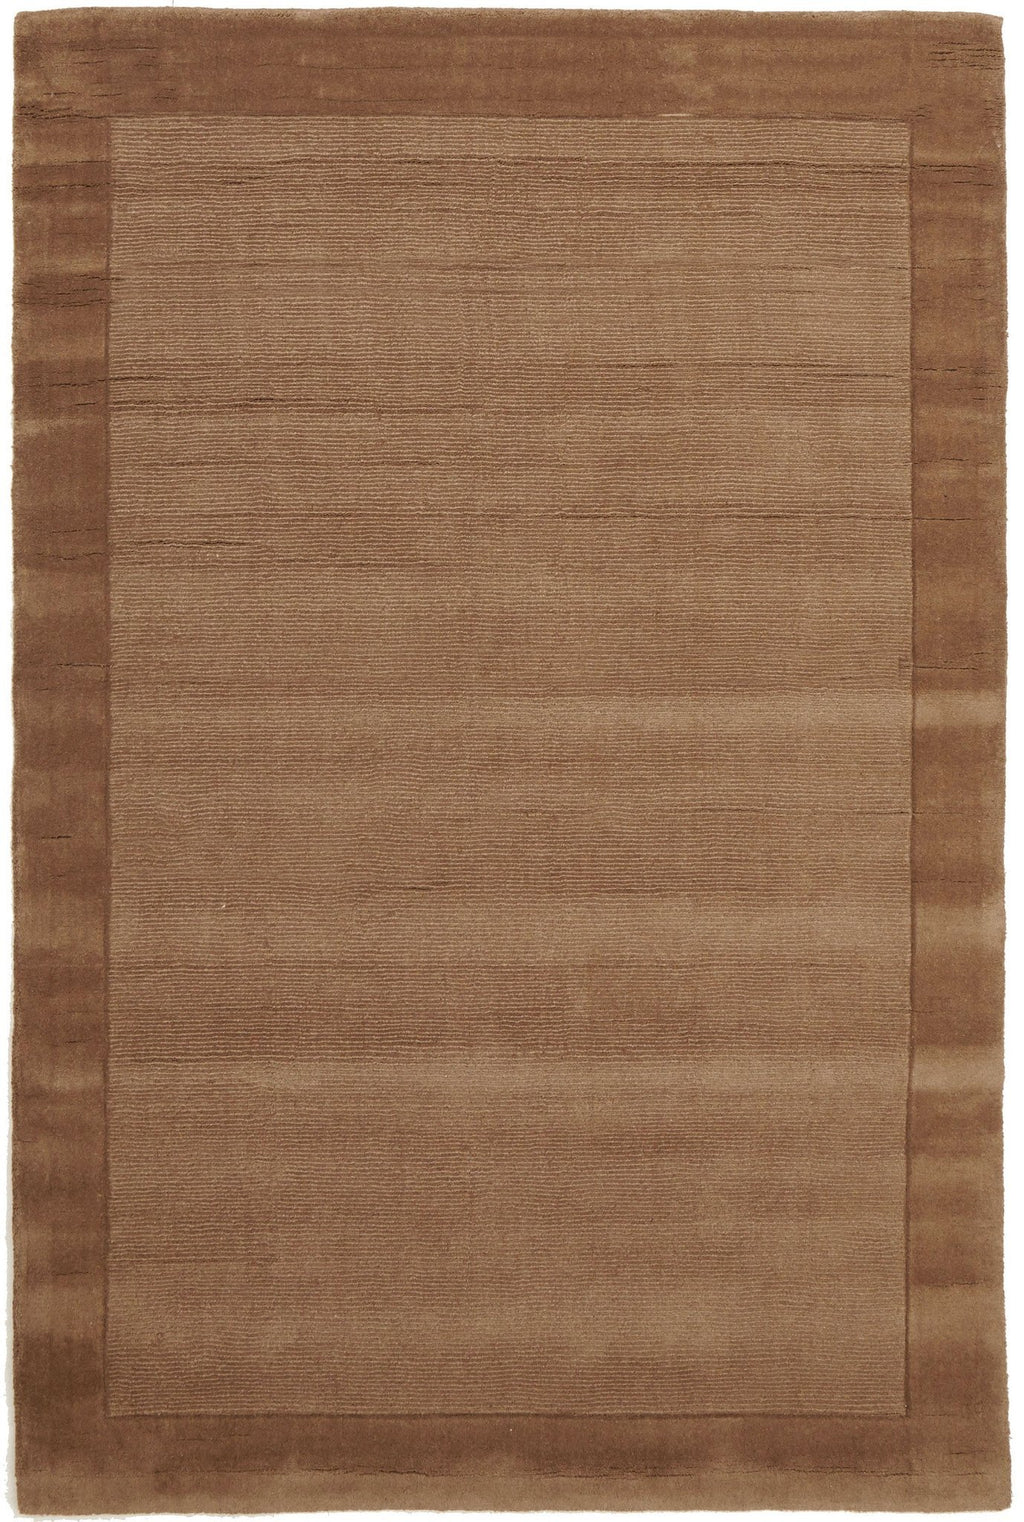 Timeless Loop Wool Pile Brown Coloured Rug